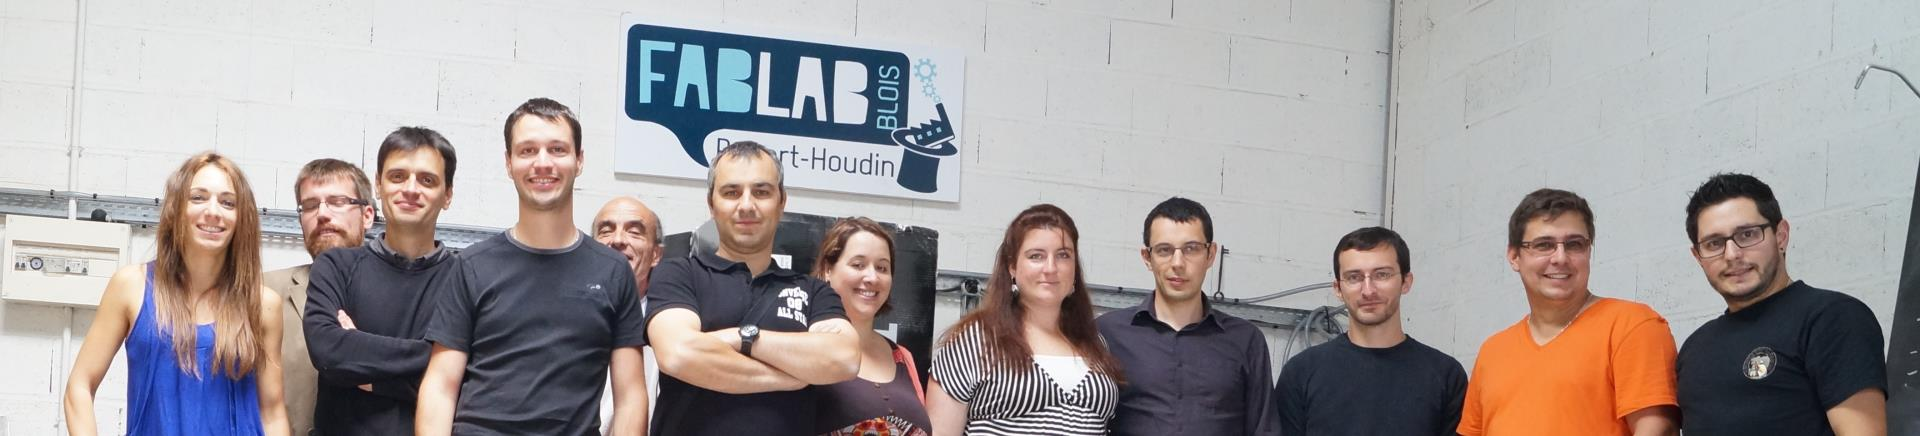 Campagne 2016 - FABLAB ROBERT-HOUDIN